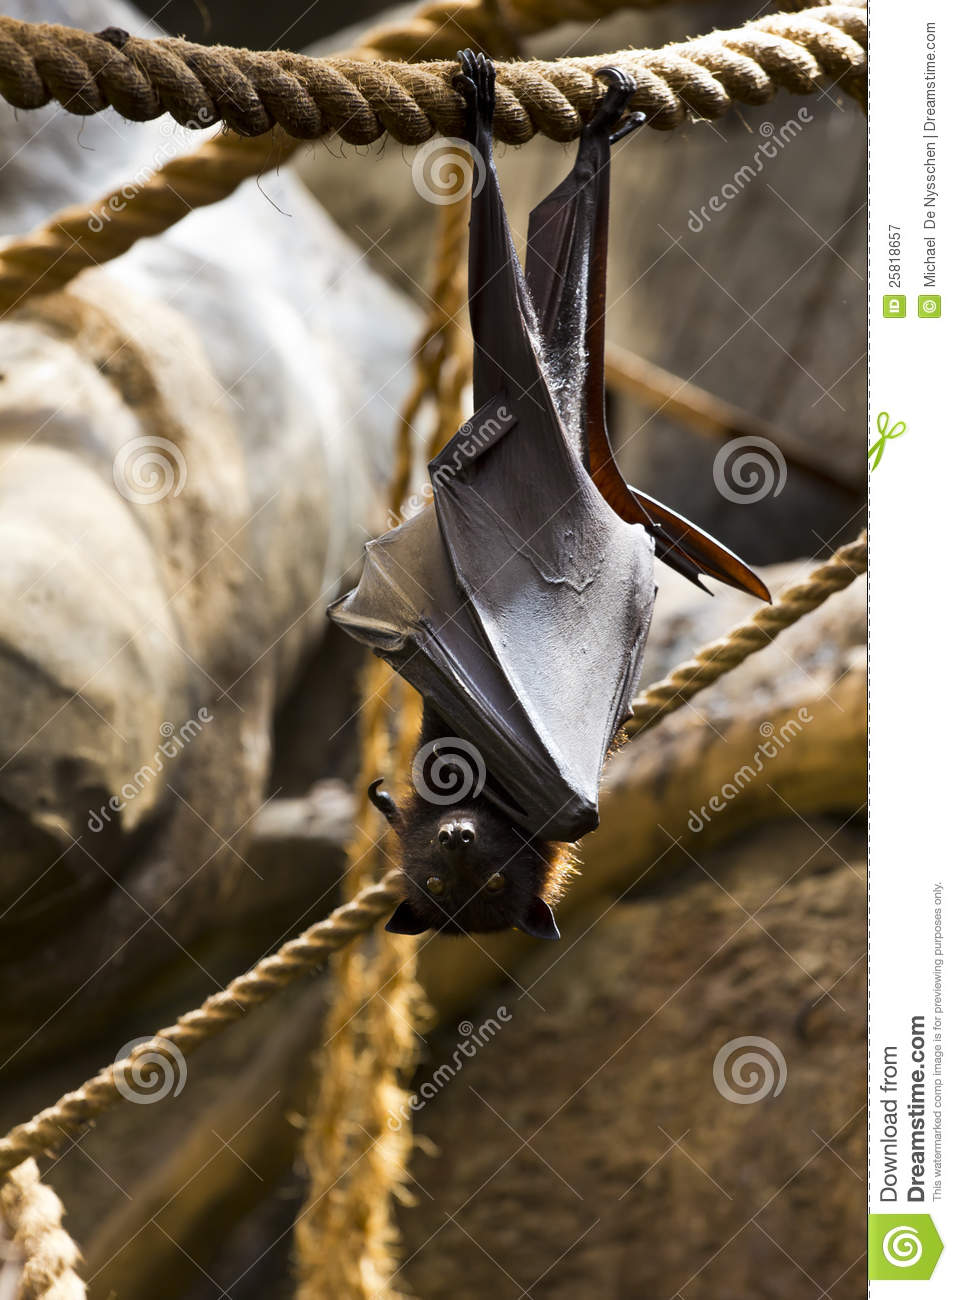 Fruit Bat Hanging Upside Down Royalty Free Stock Photography   Image